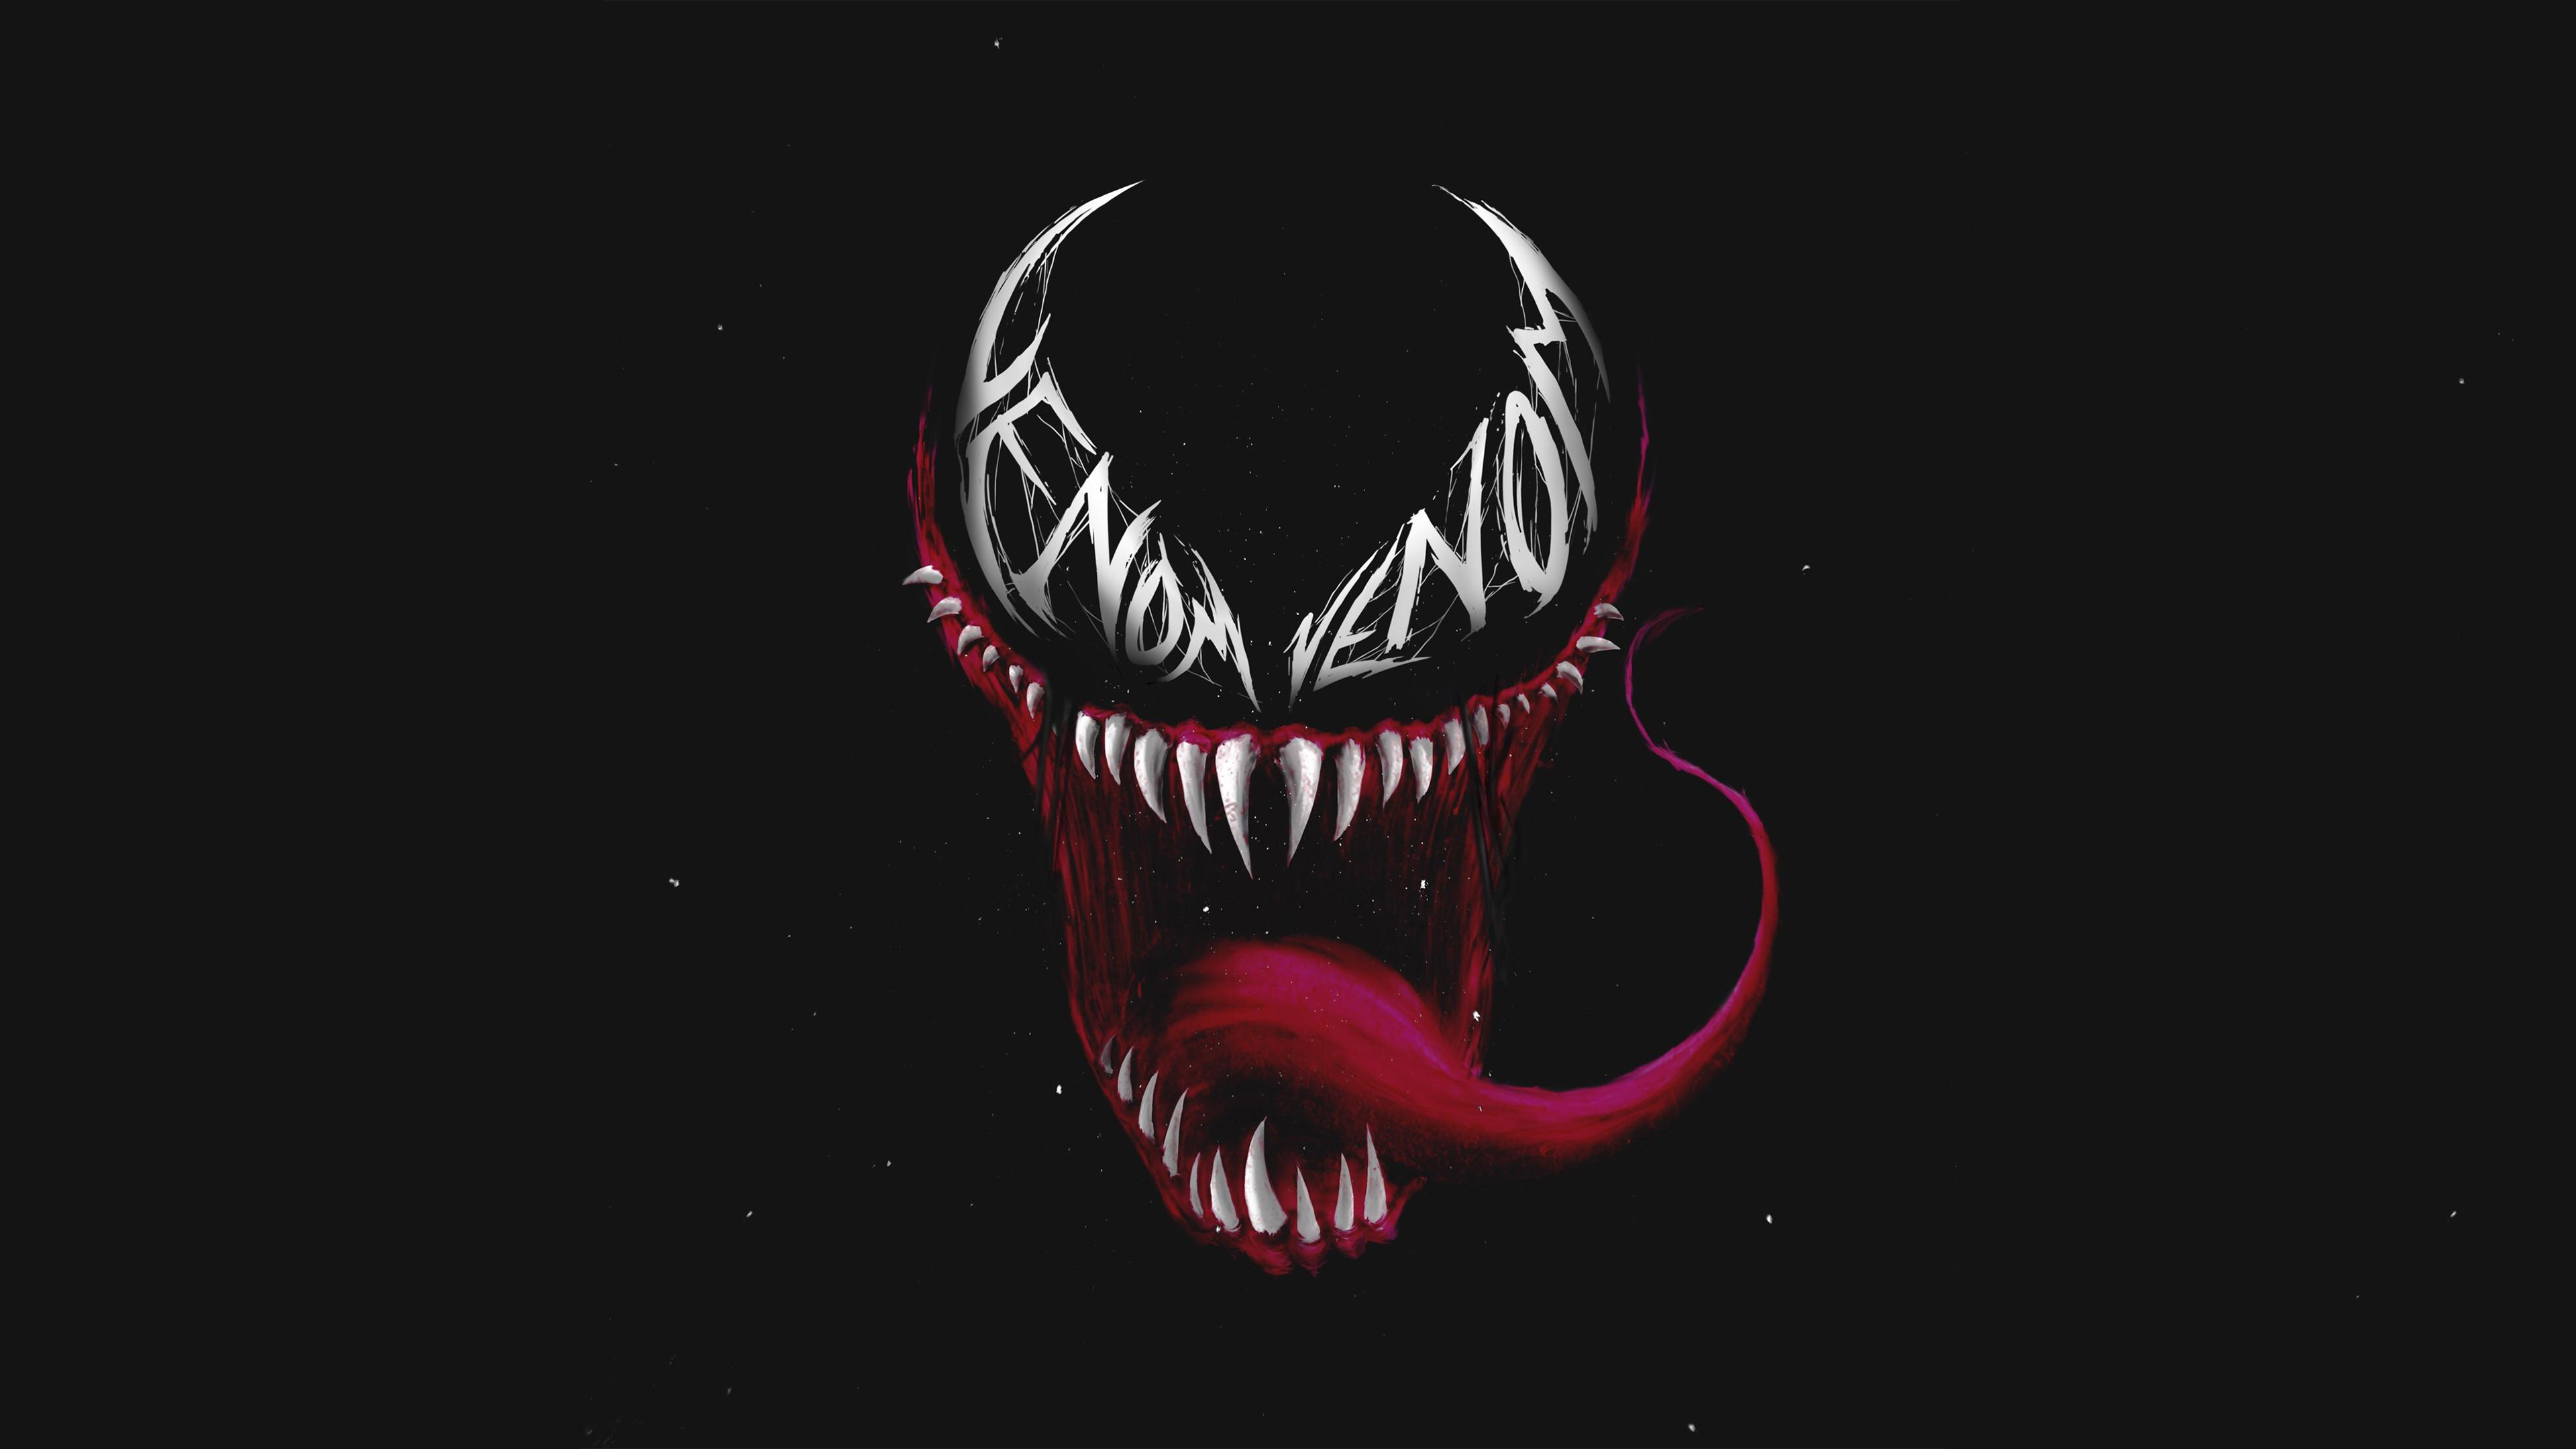 3840x2160 Venom Reddit Art 4k Hd 4k Wallpapers Images Backgrounds Photos And Pictures